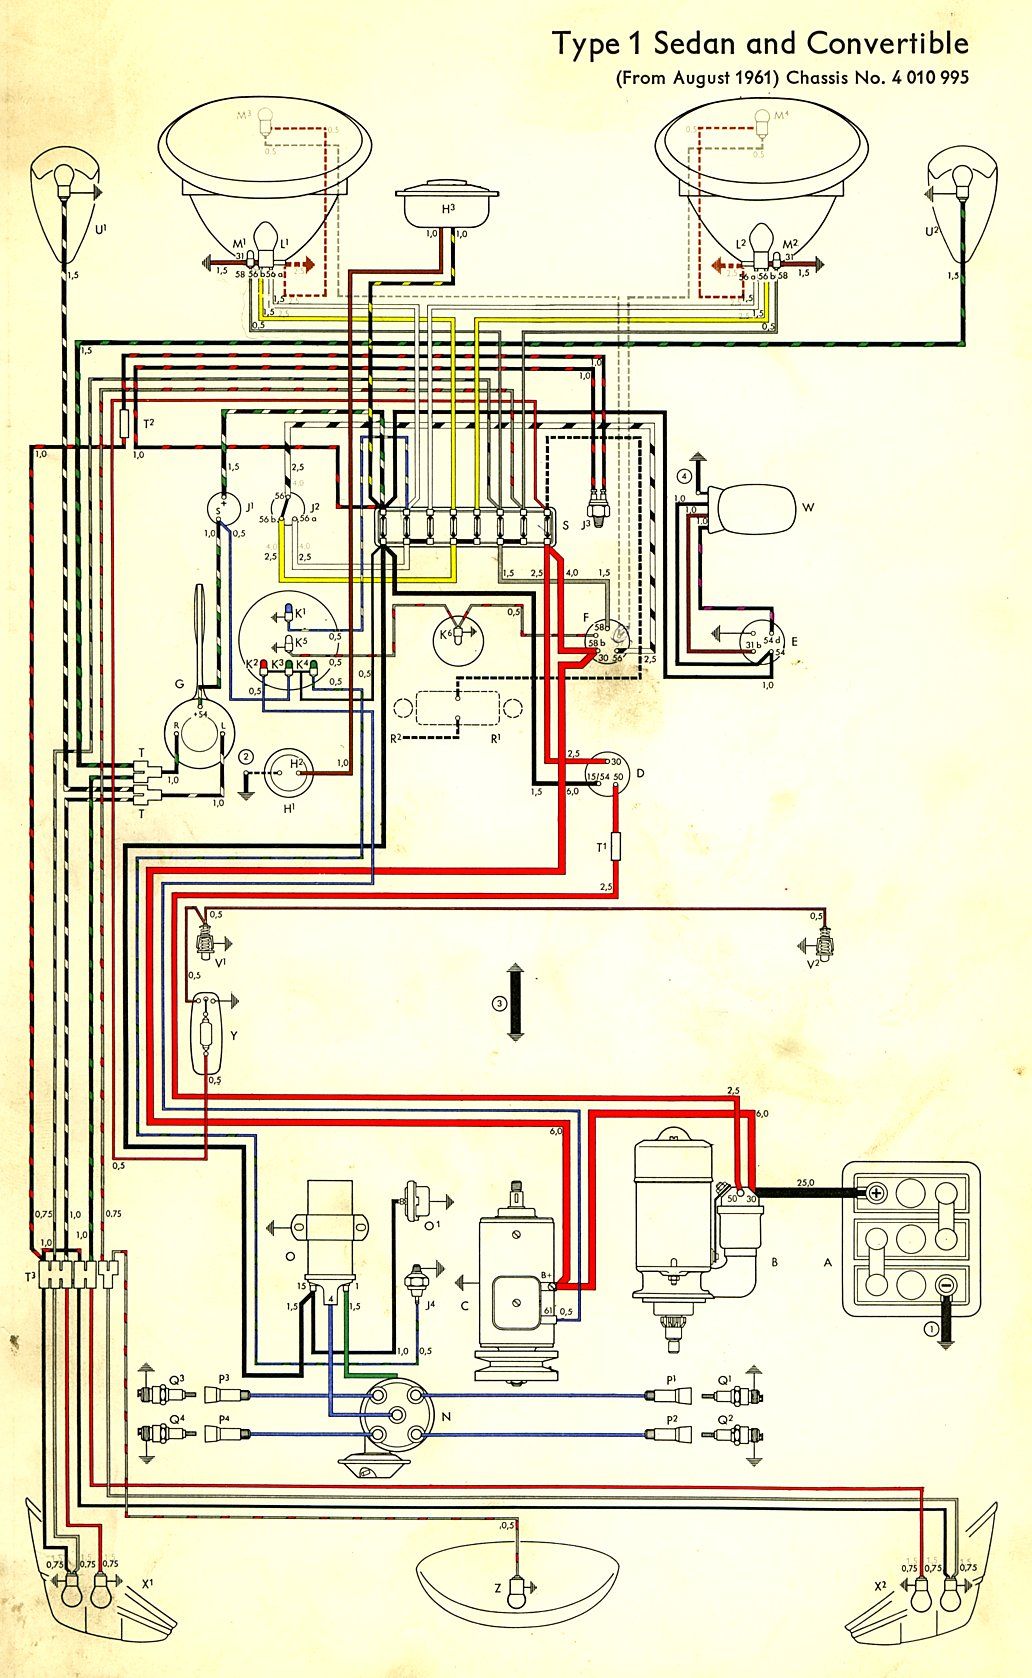 bug_62 1962 beetle wiring diagram thegoldenbug com beetle wiring diagram to fix a/c fan at n-0.co